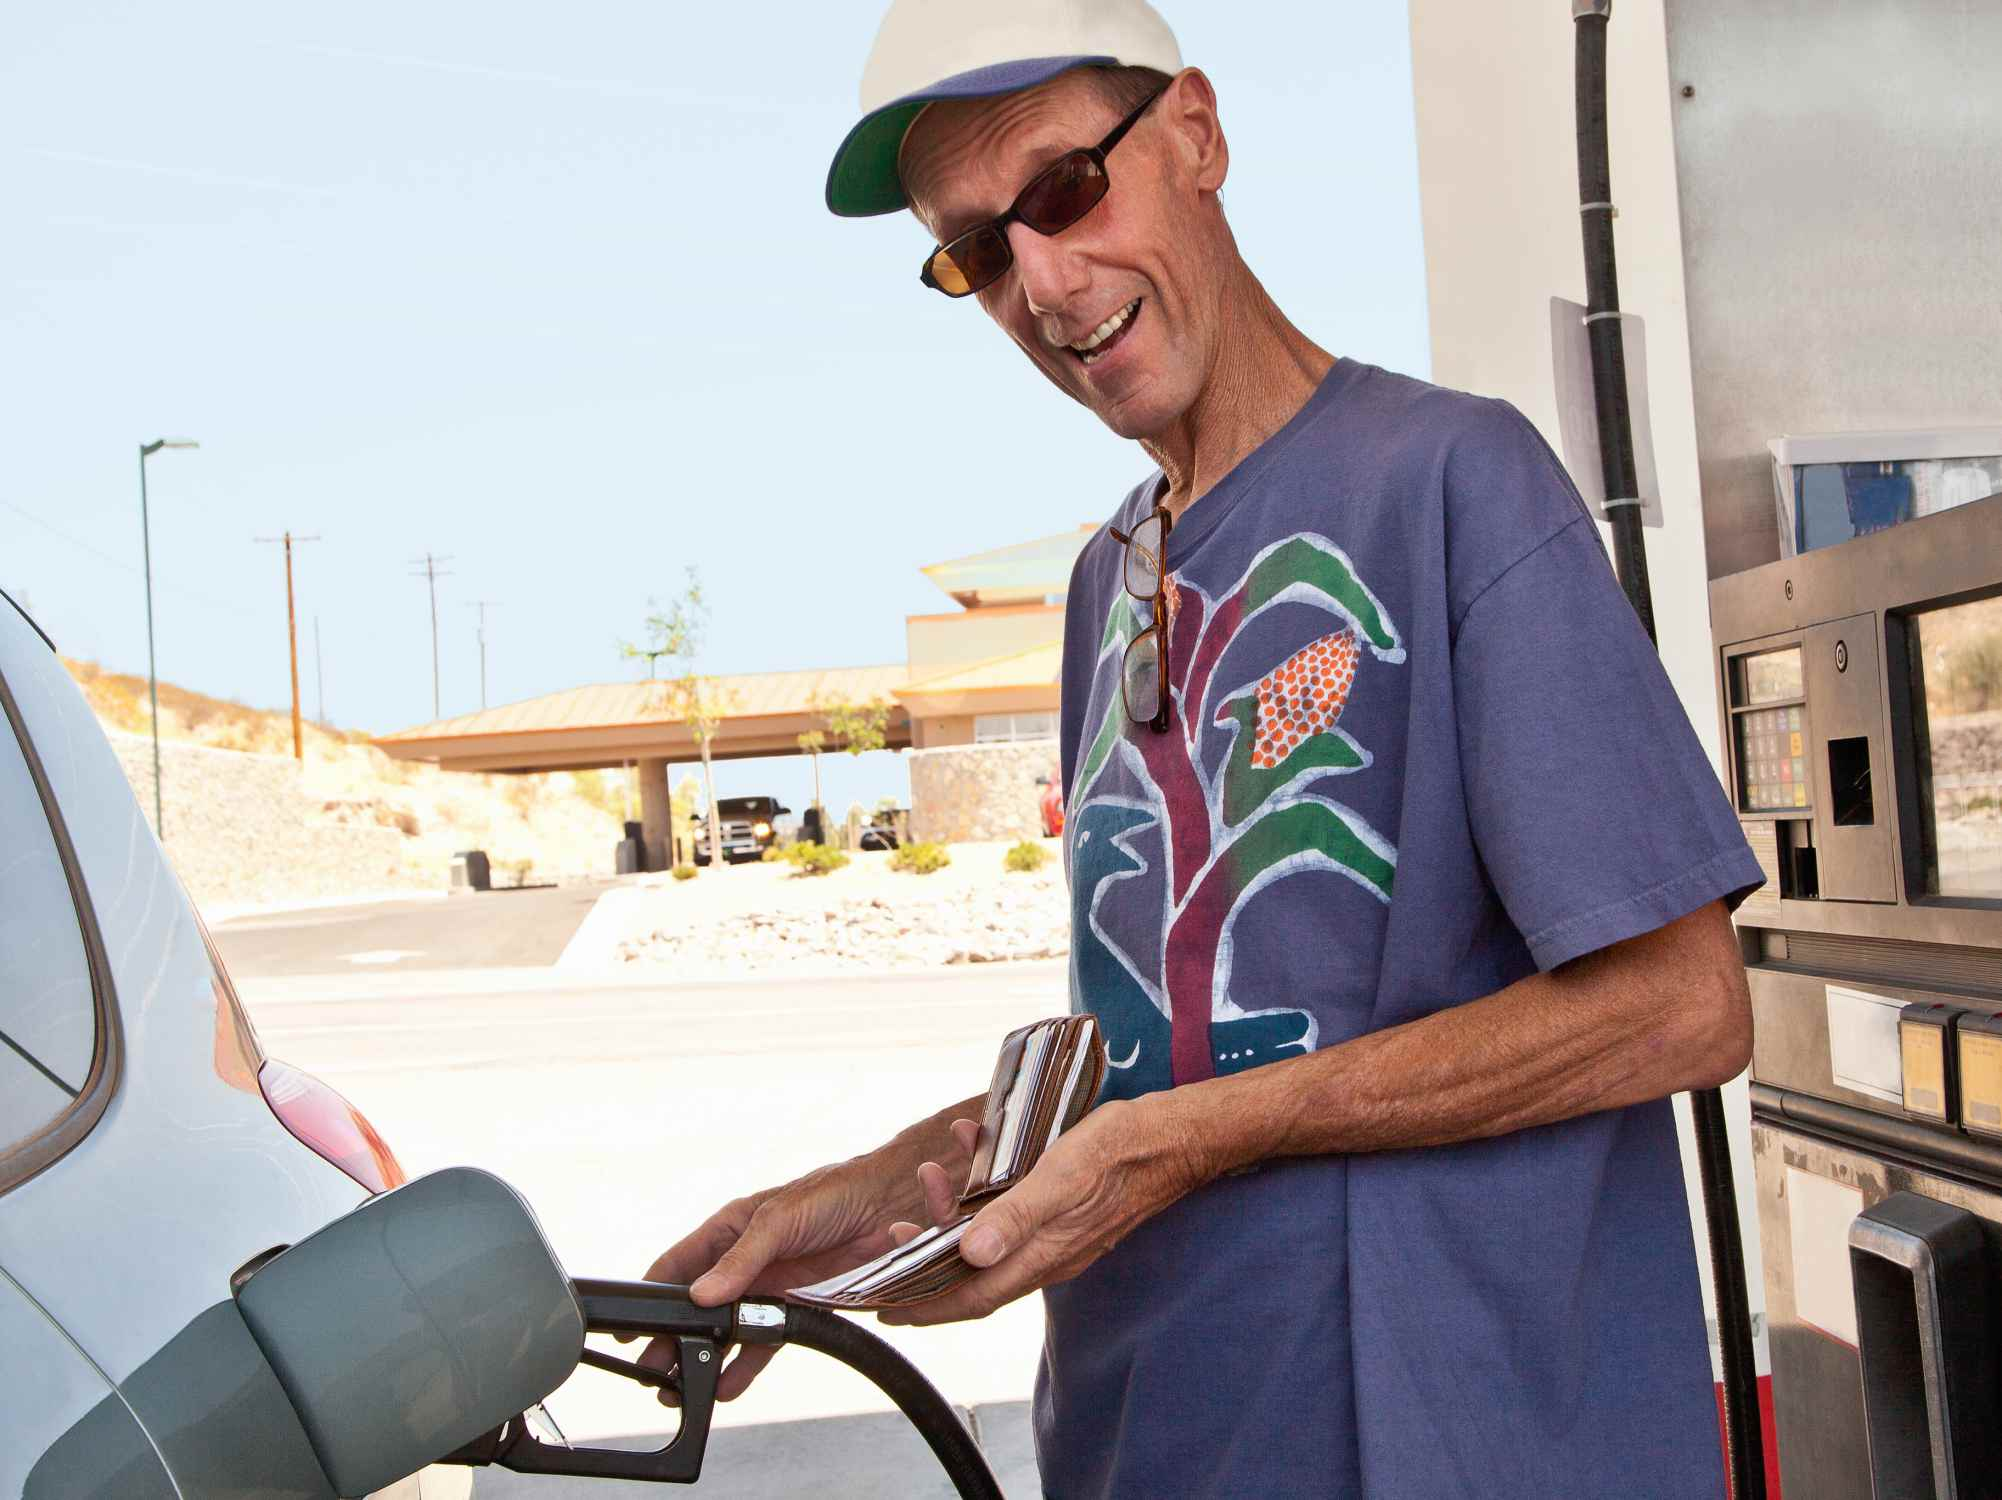 Smiling man pumping gas in the summer during gas price inflation